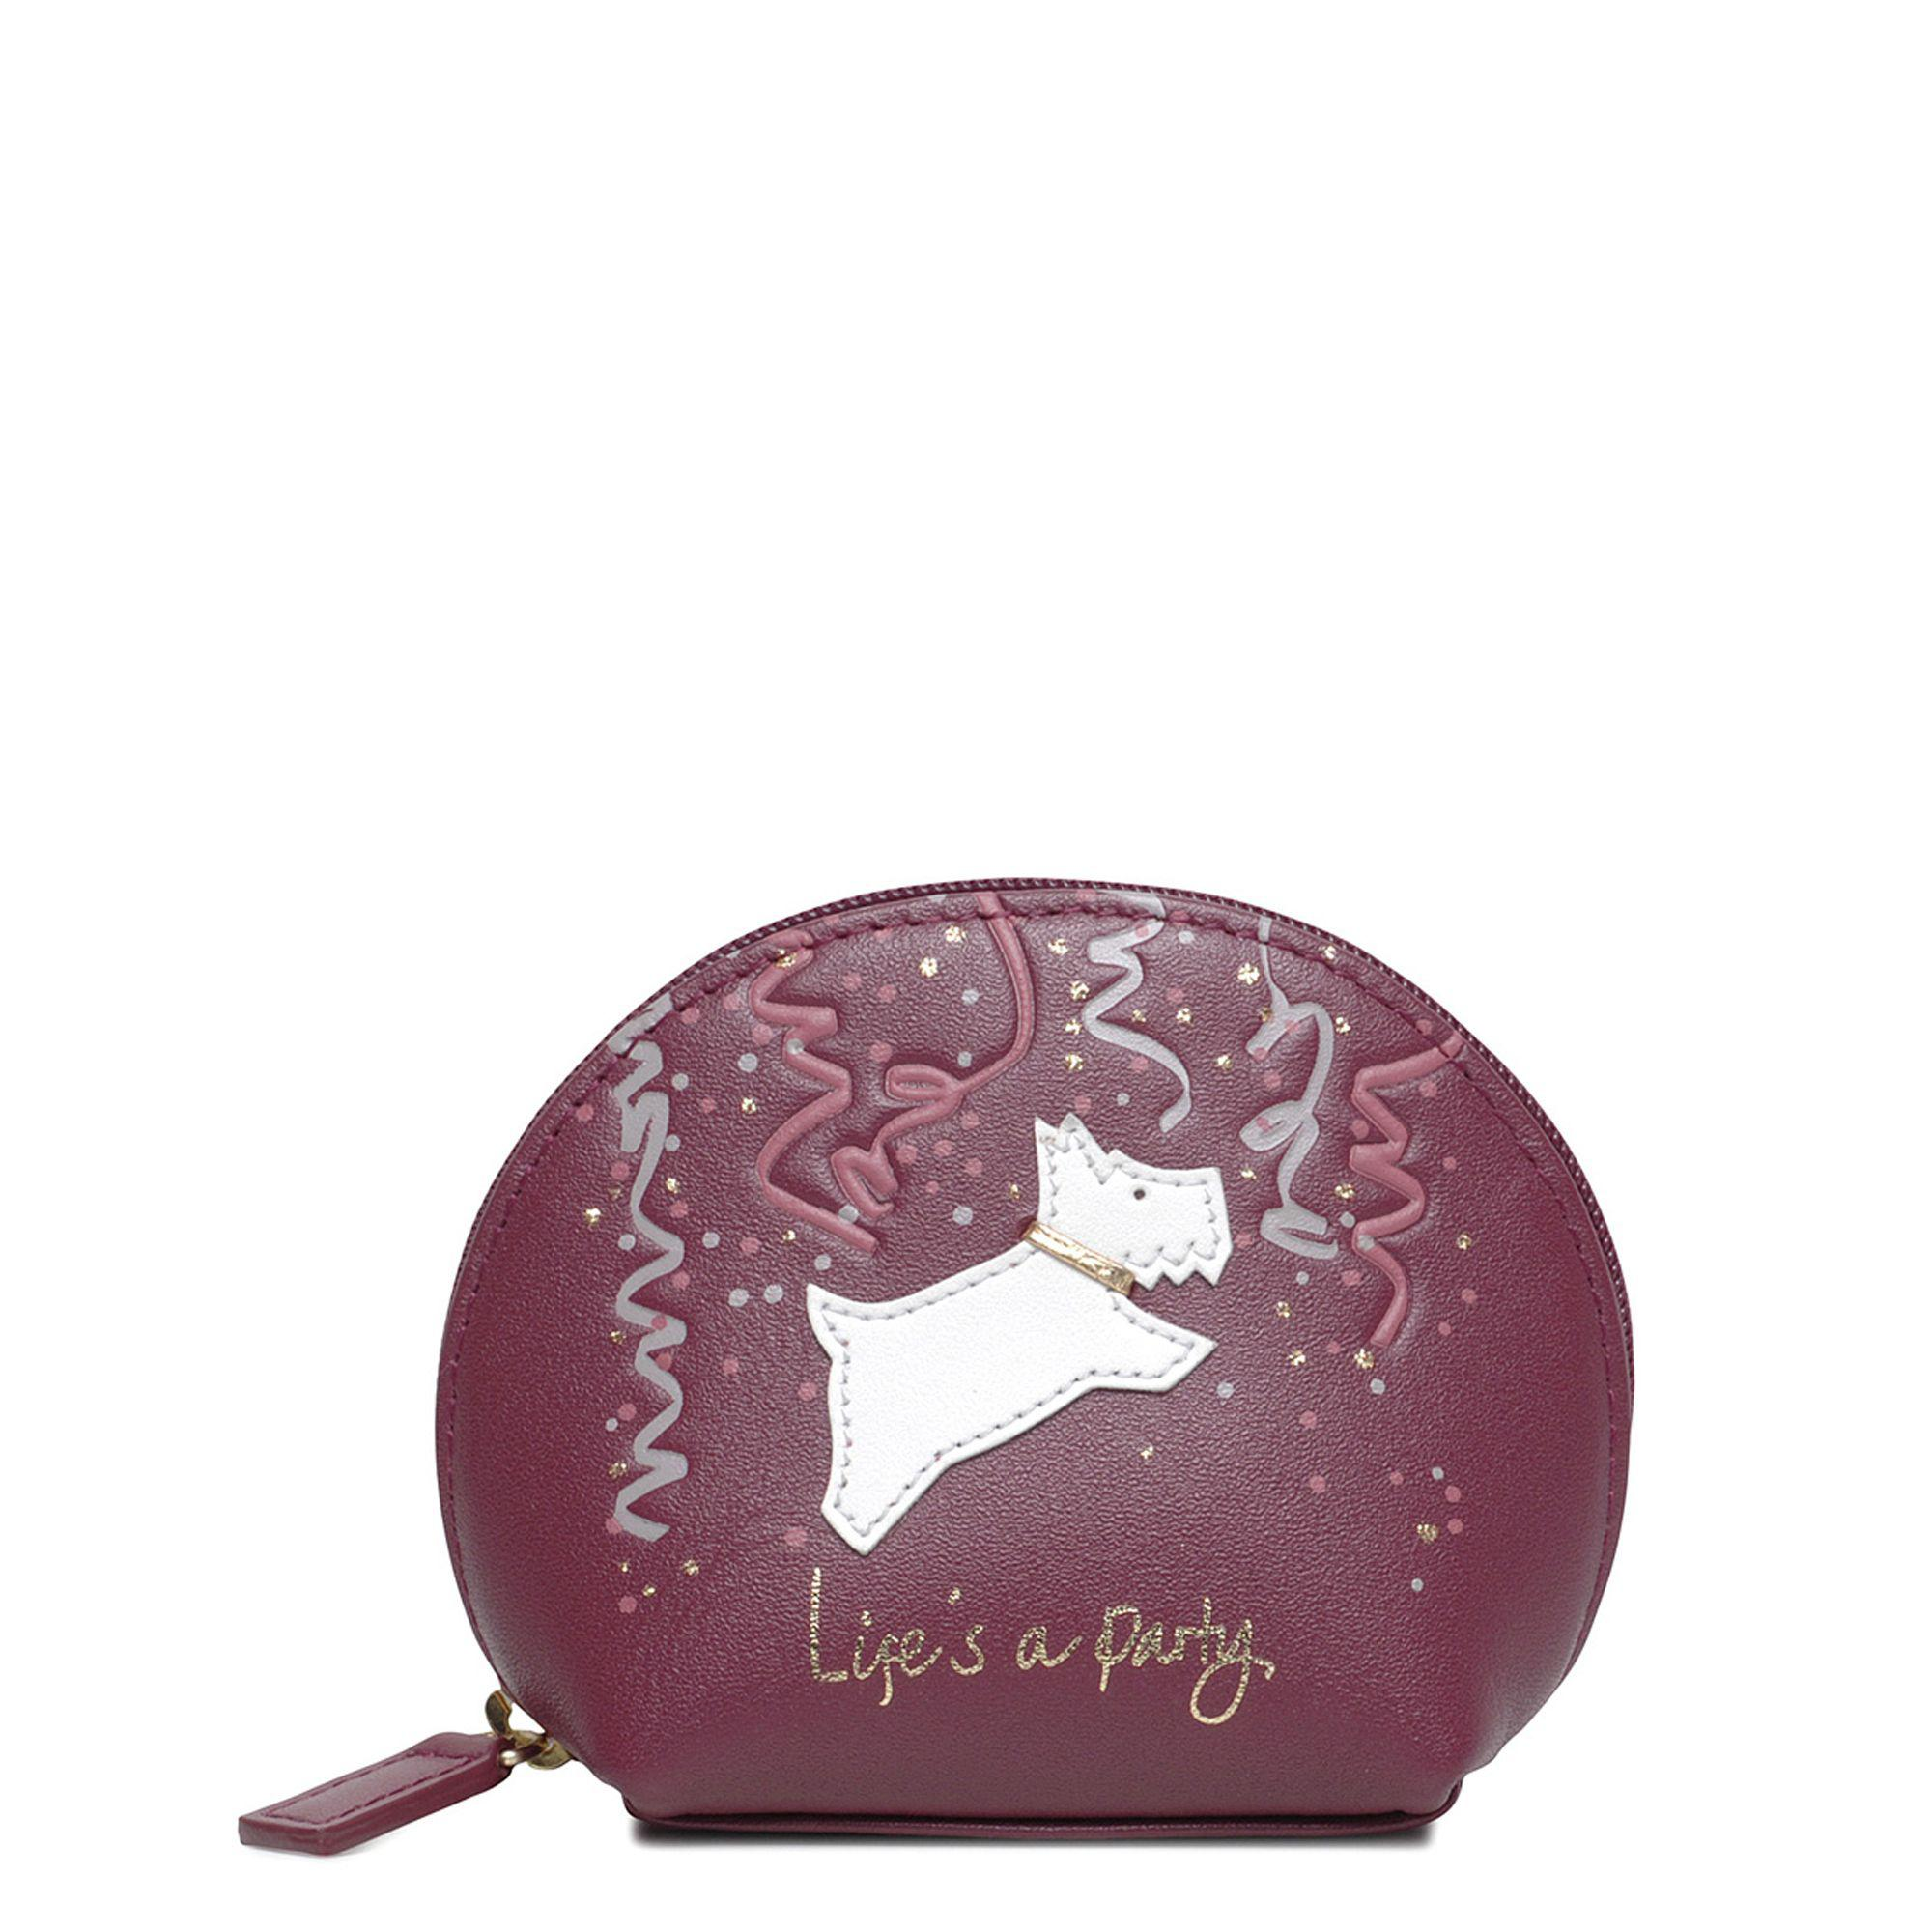 913270b18aee88 Radley Small Leather 'life's A Party' Zip Top Coin Purse in Purple ...